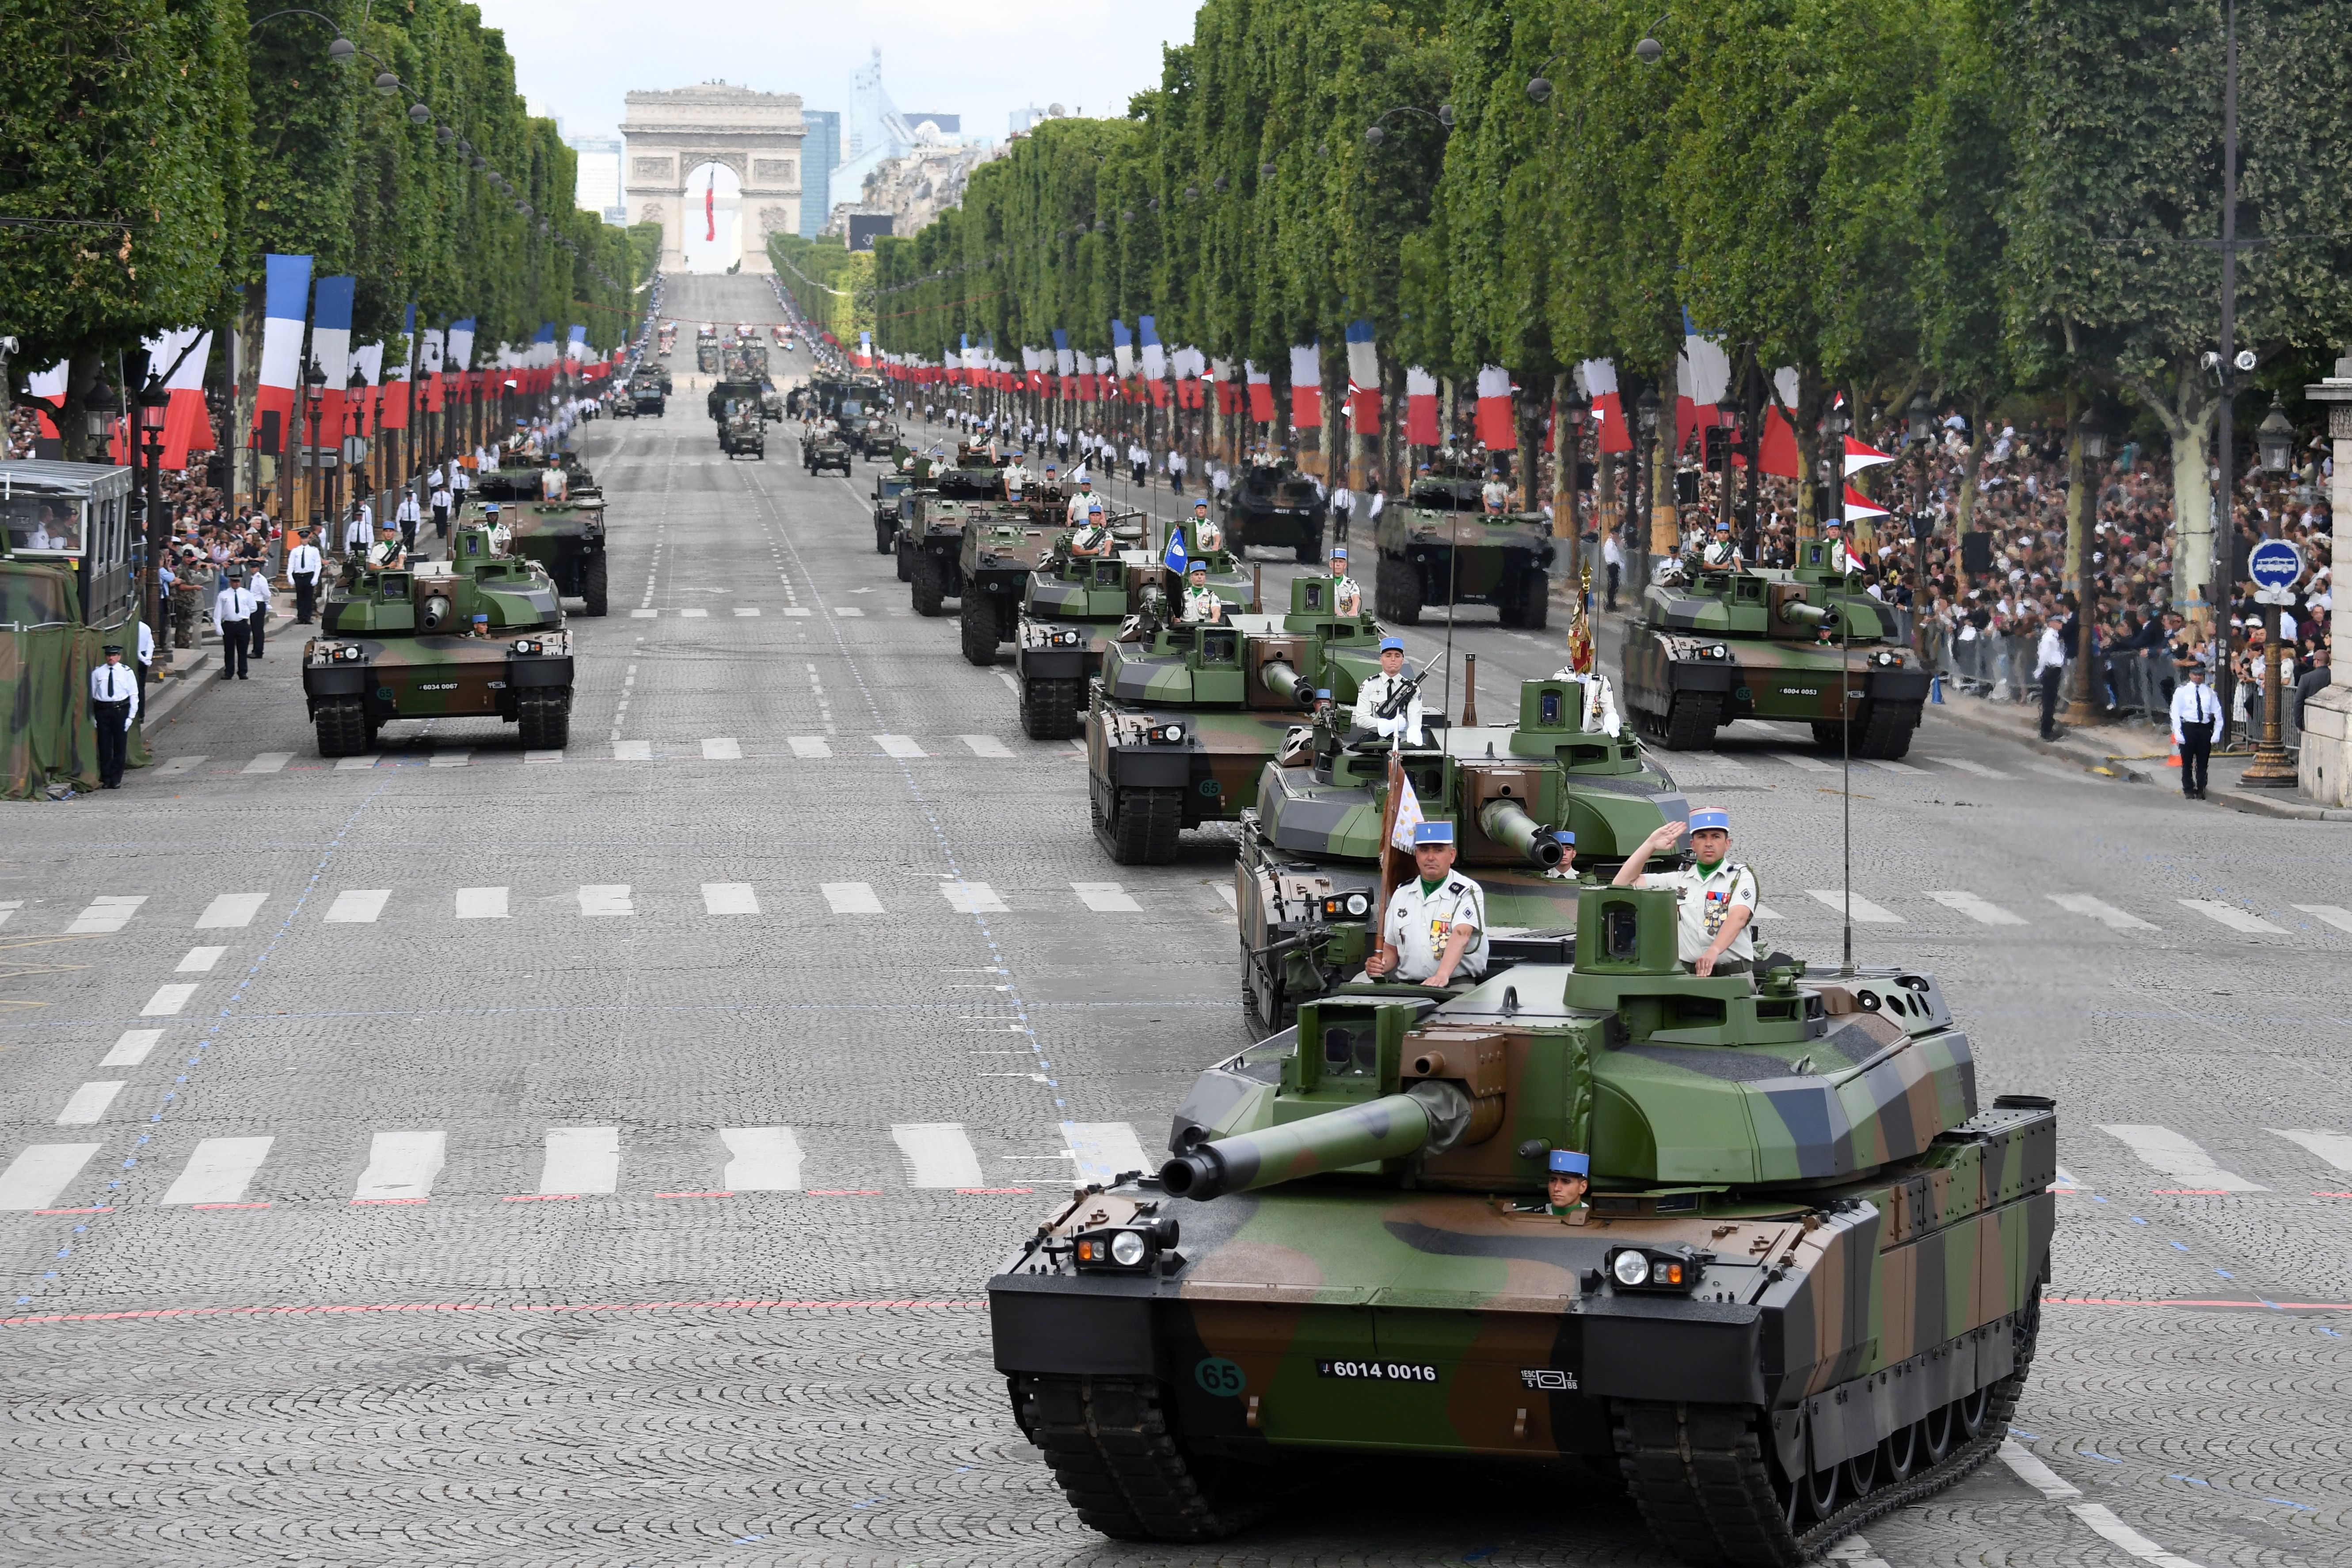 Members of the 5e Regiment de Dragons (5th Dragoon Regiment) parade on Leclerc tanks during the annual Bastille Day military parade on the Champs-Elysees avenue in Paris on July 14, 2017.